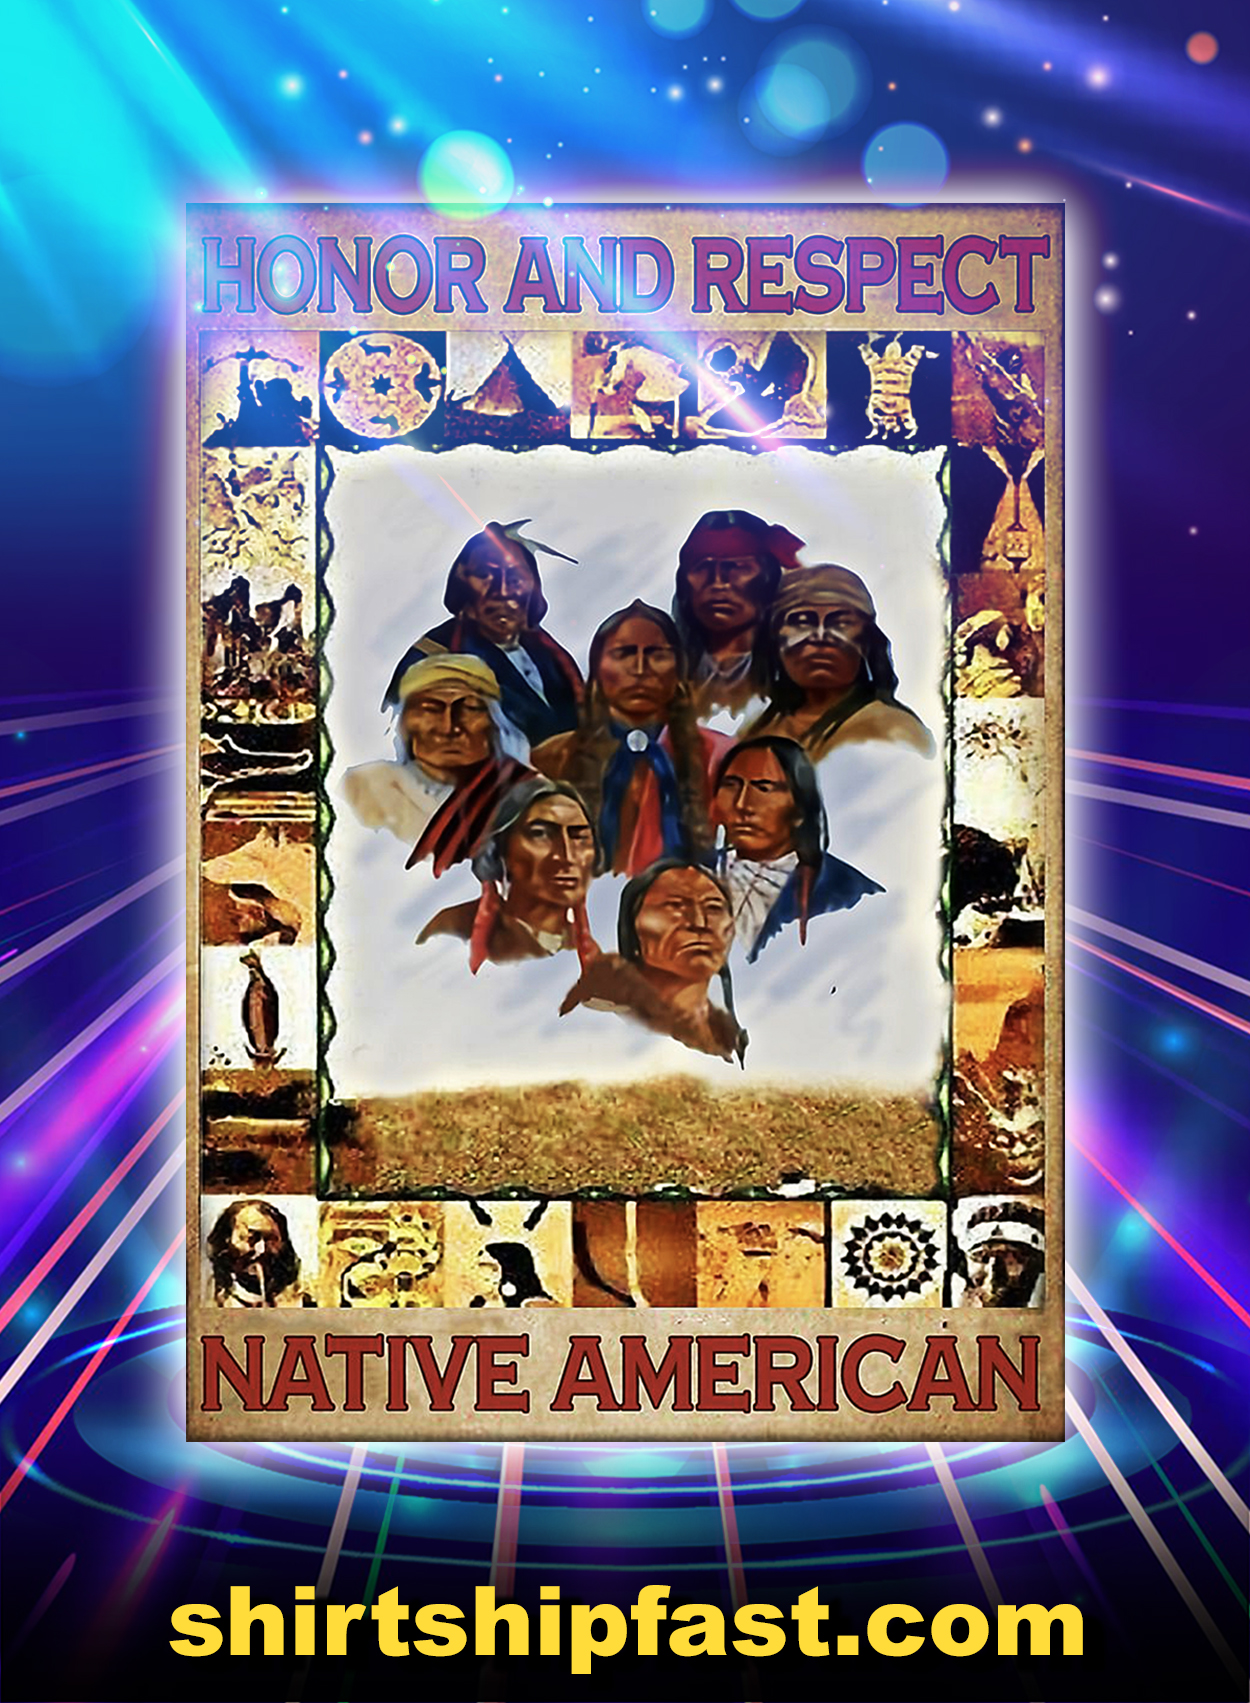 Honor and respect native american poster - A3